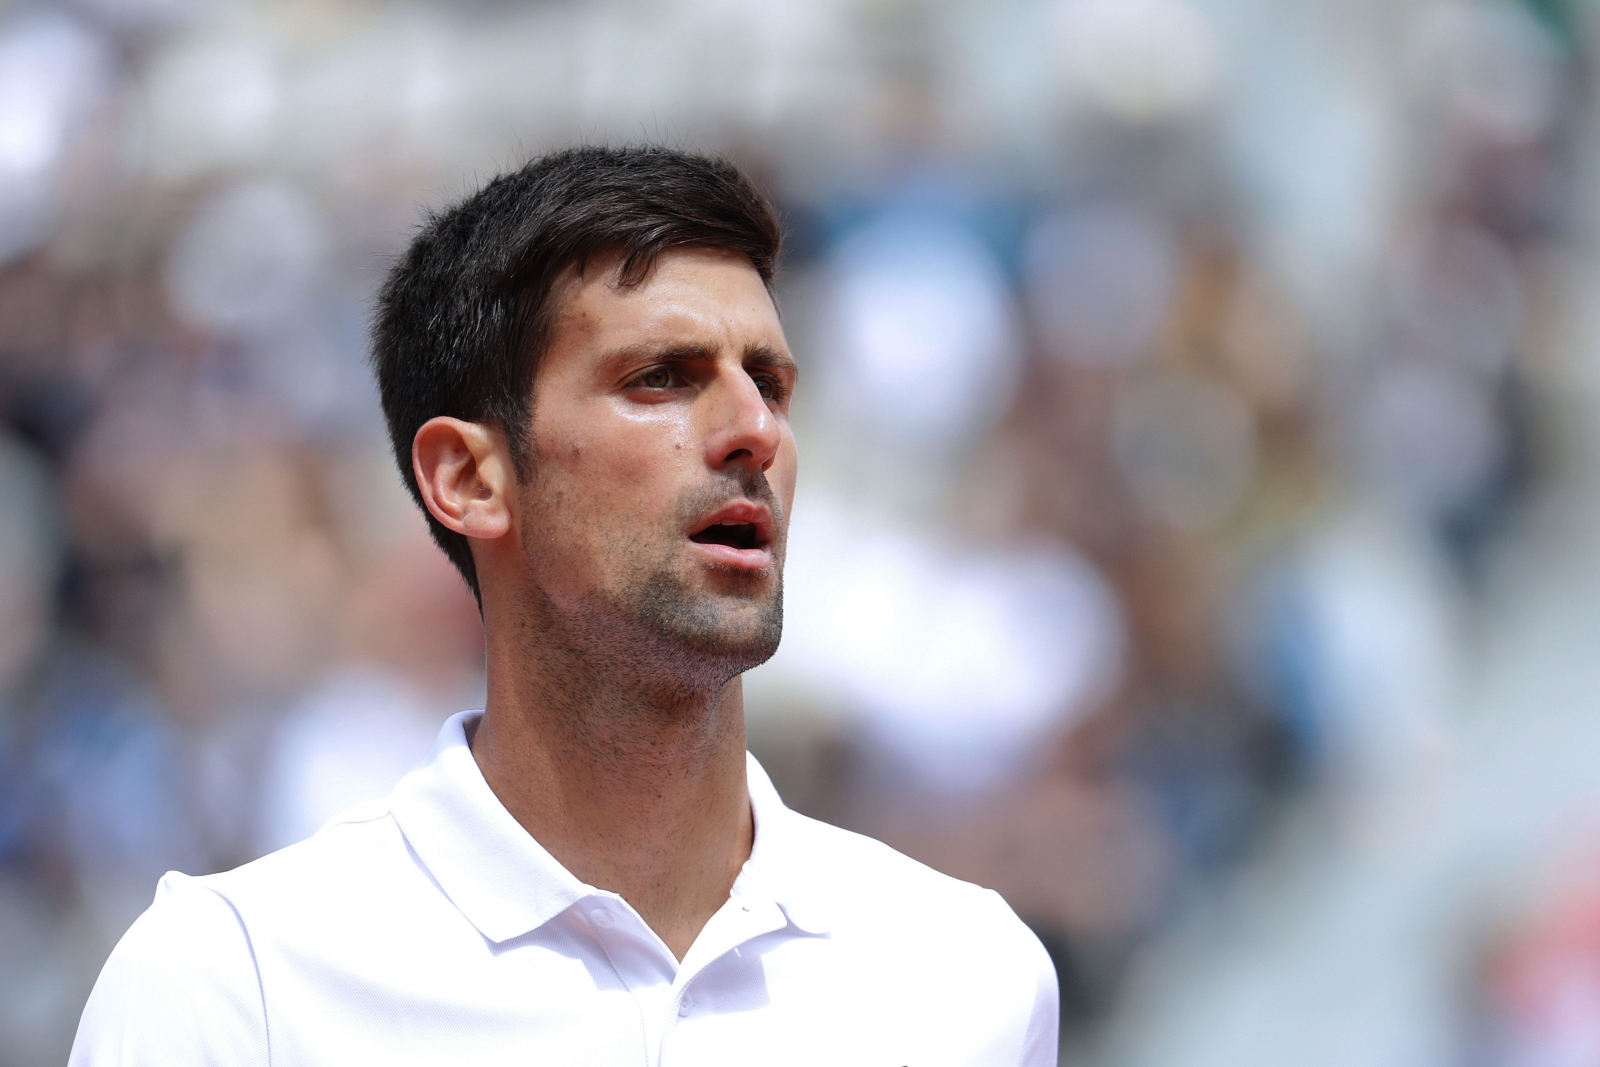 Djokovic's title defense ends